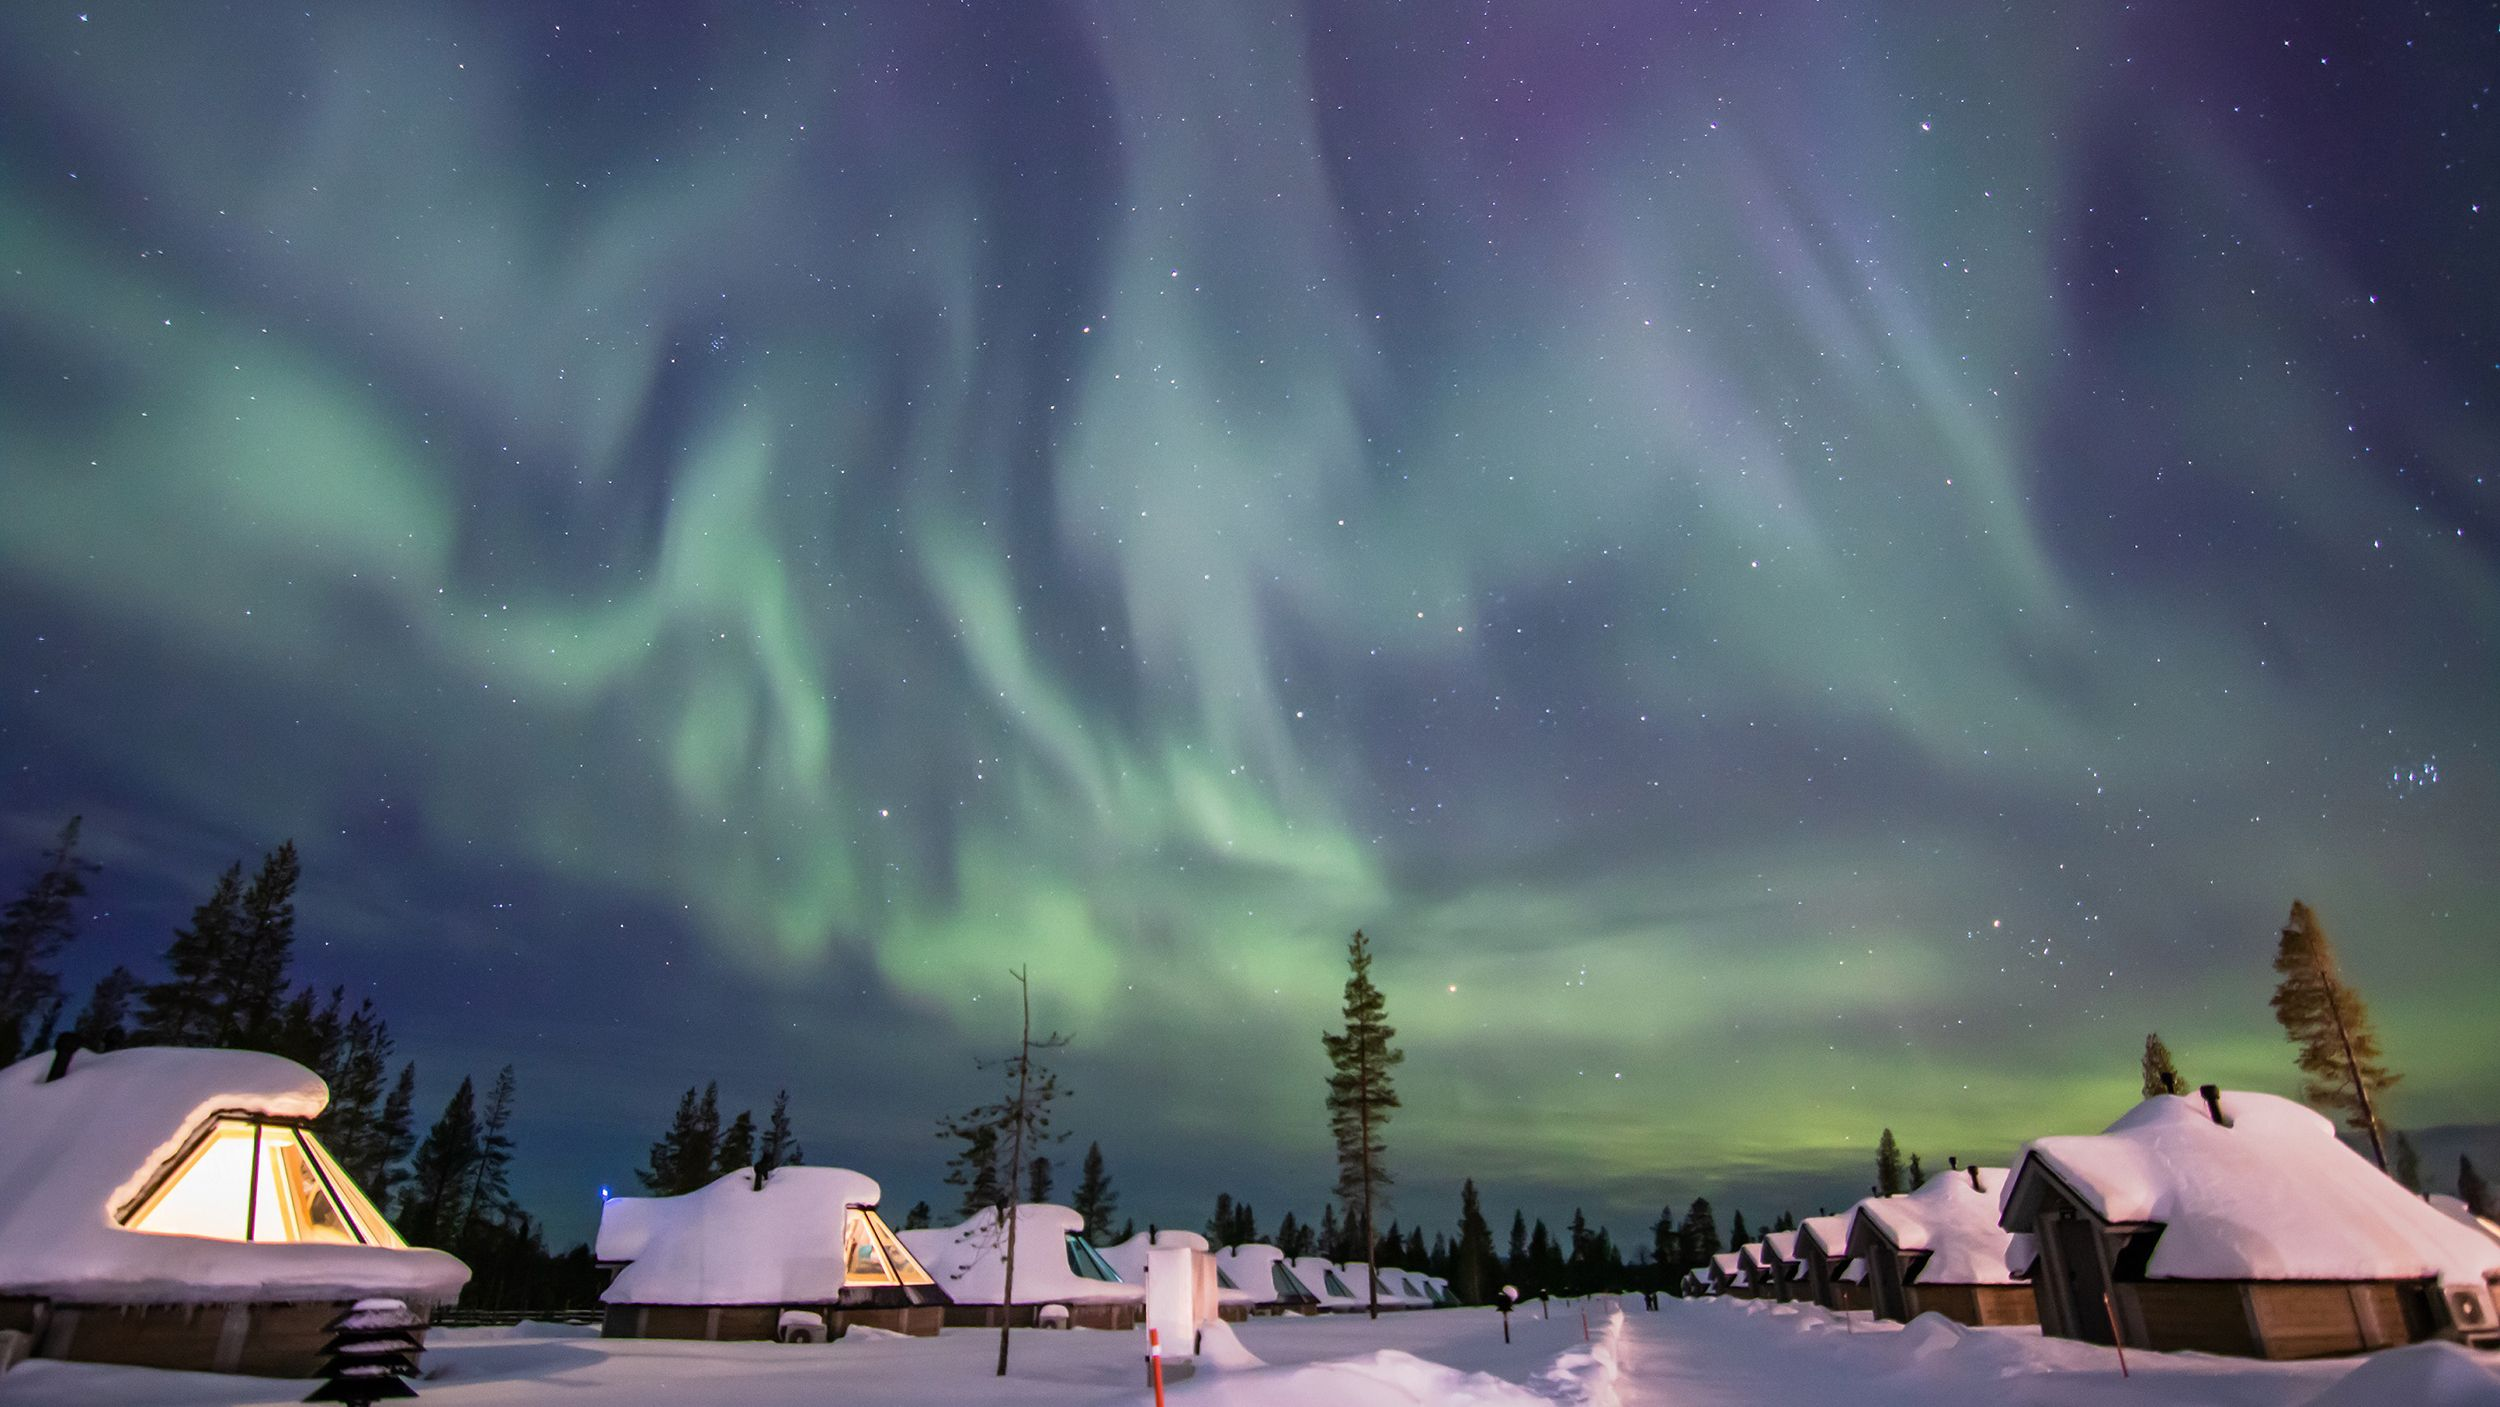 The best hotels to see the Northern Lights